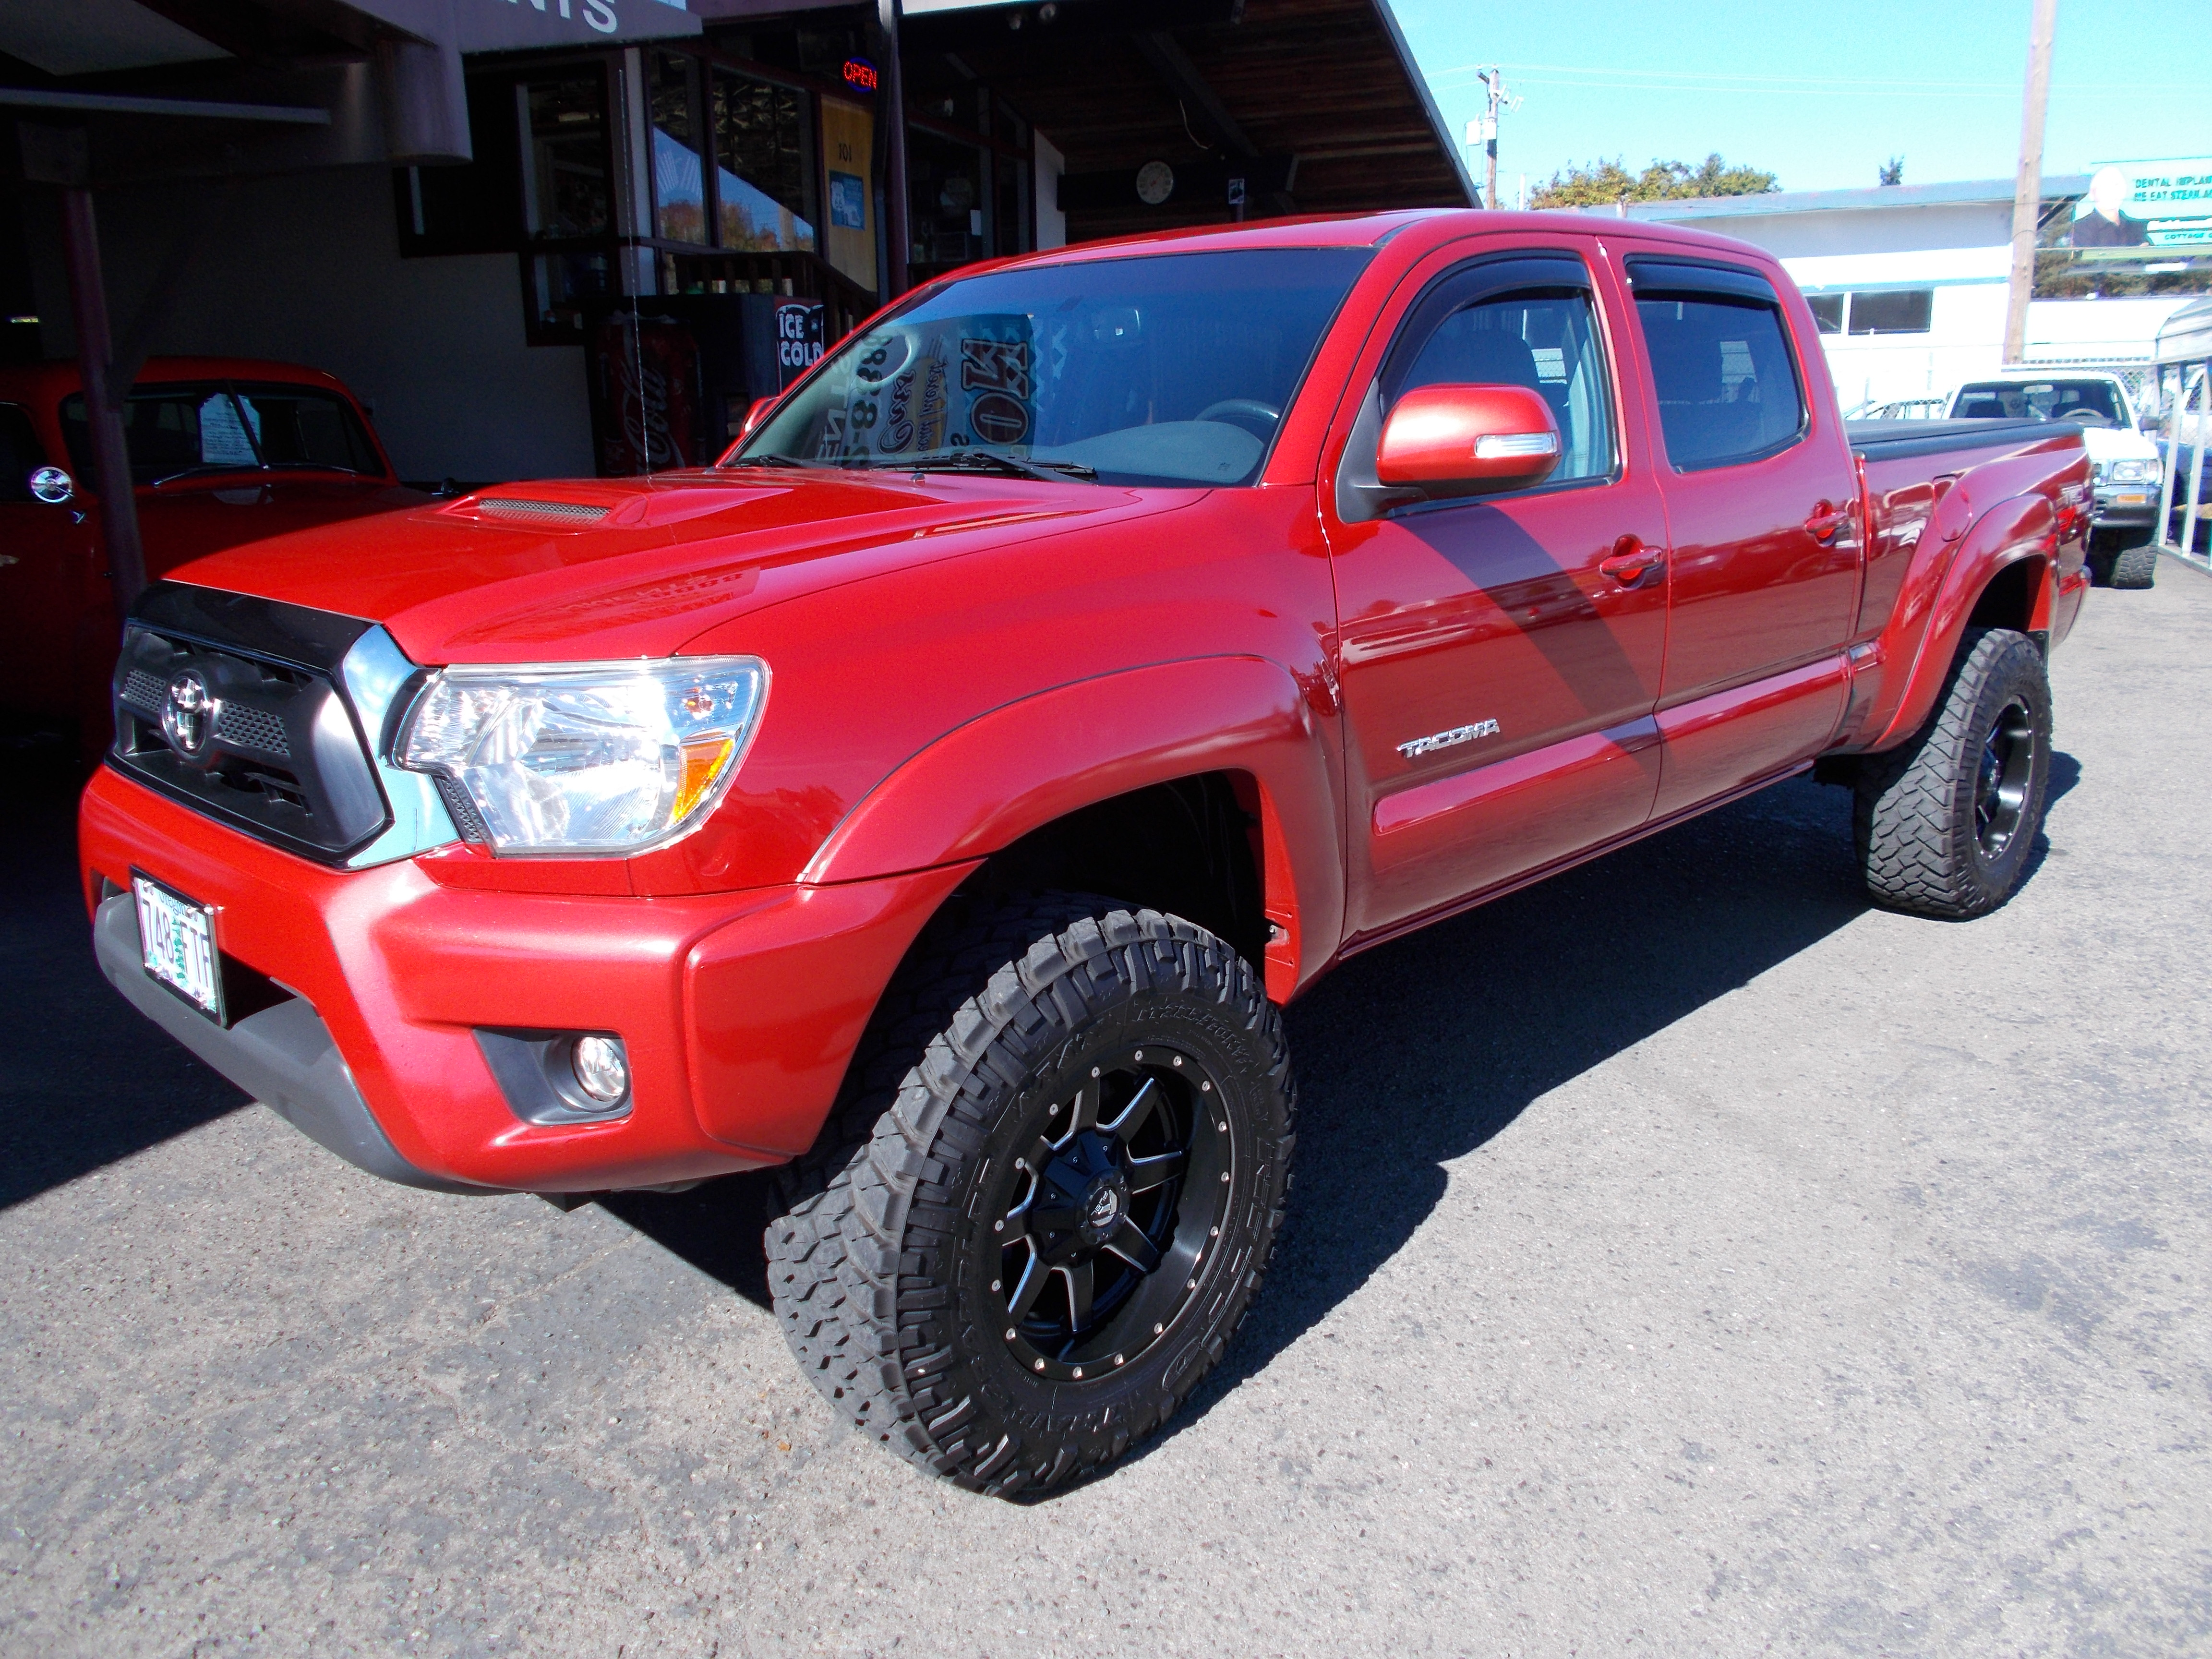 Hamilton Auto Sales 1995 Chevy 6 5 Turbo Sel 2012 Toyota Tacoma Double Cab Trd Sport Lb 4x4 Only 33200 Miles 40 V This Is A Private Sell We Are Helping With For My Son